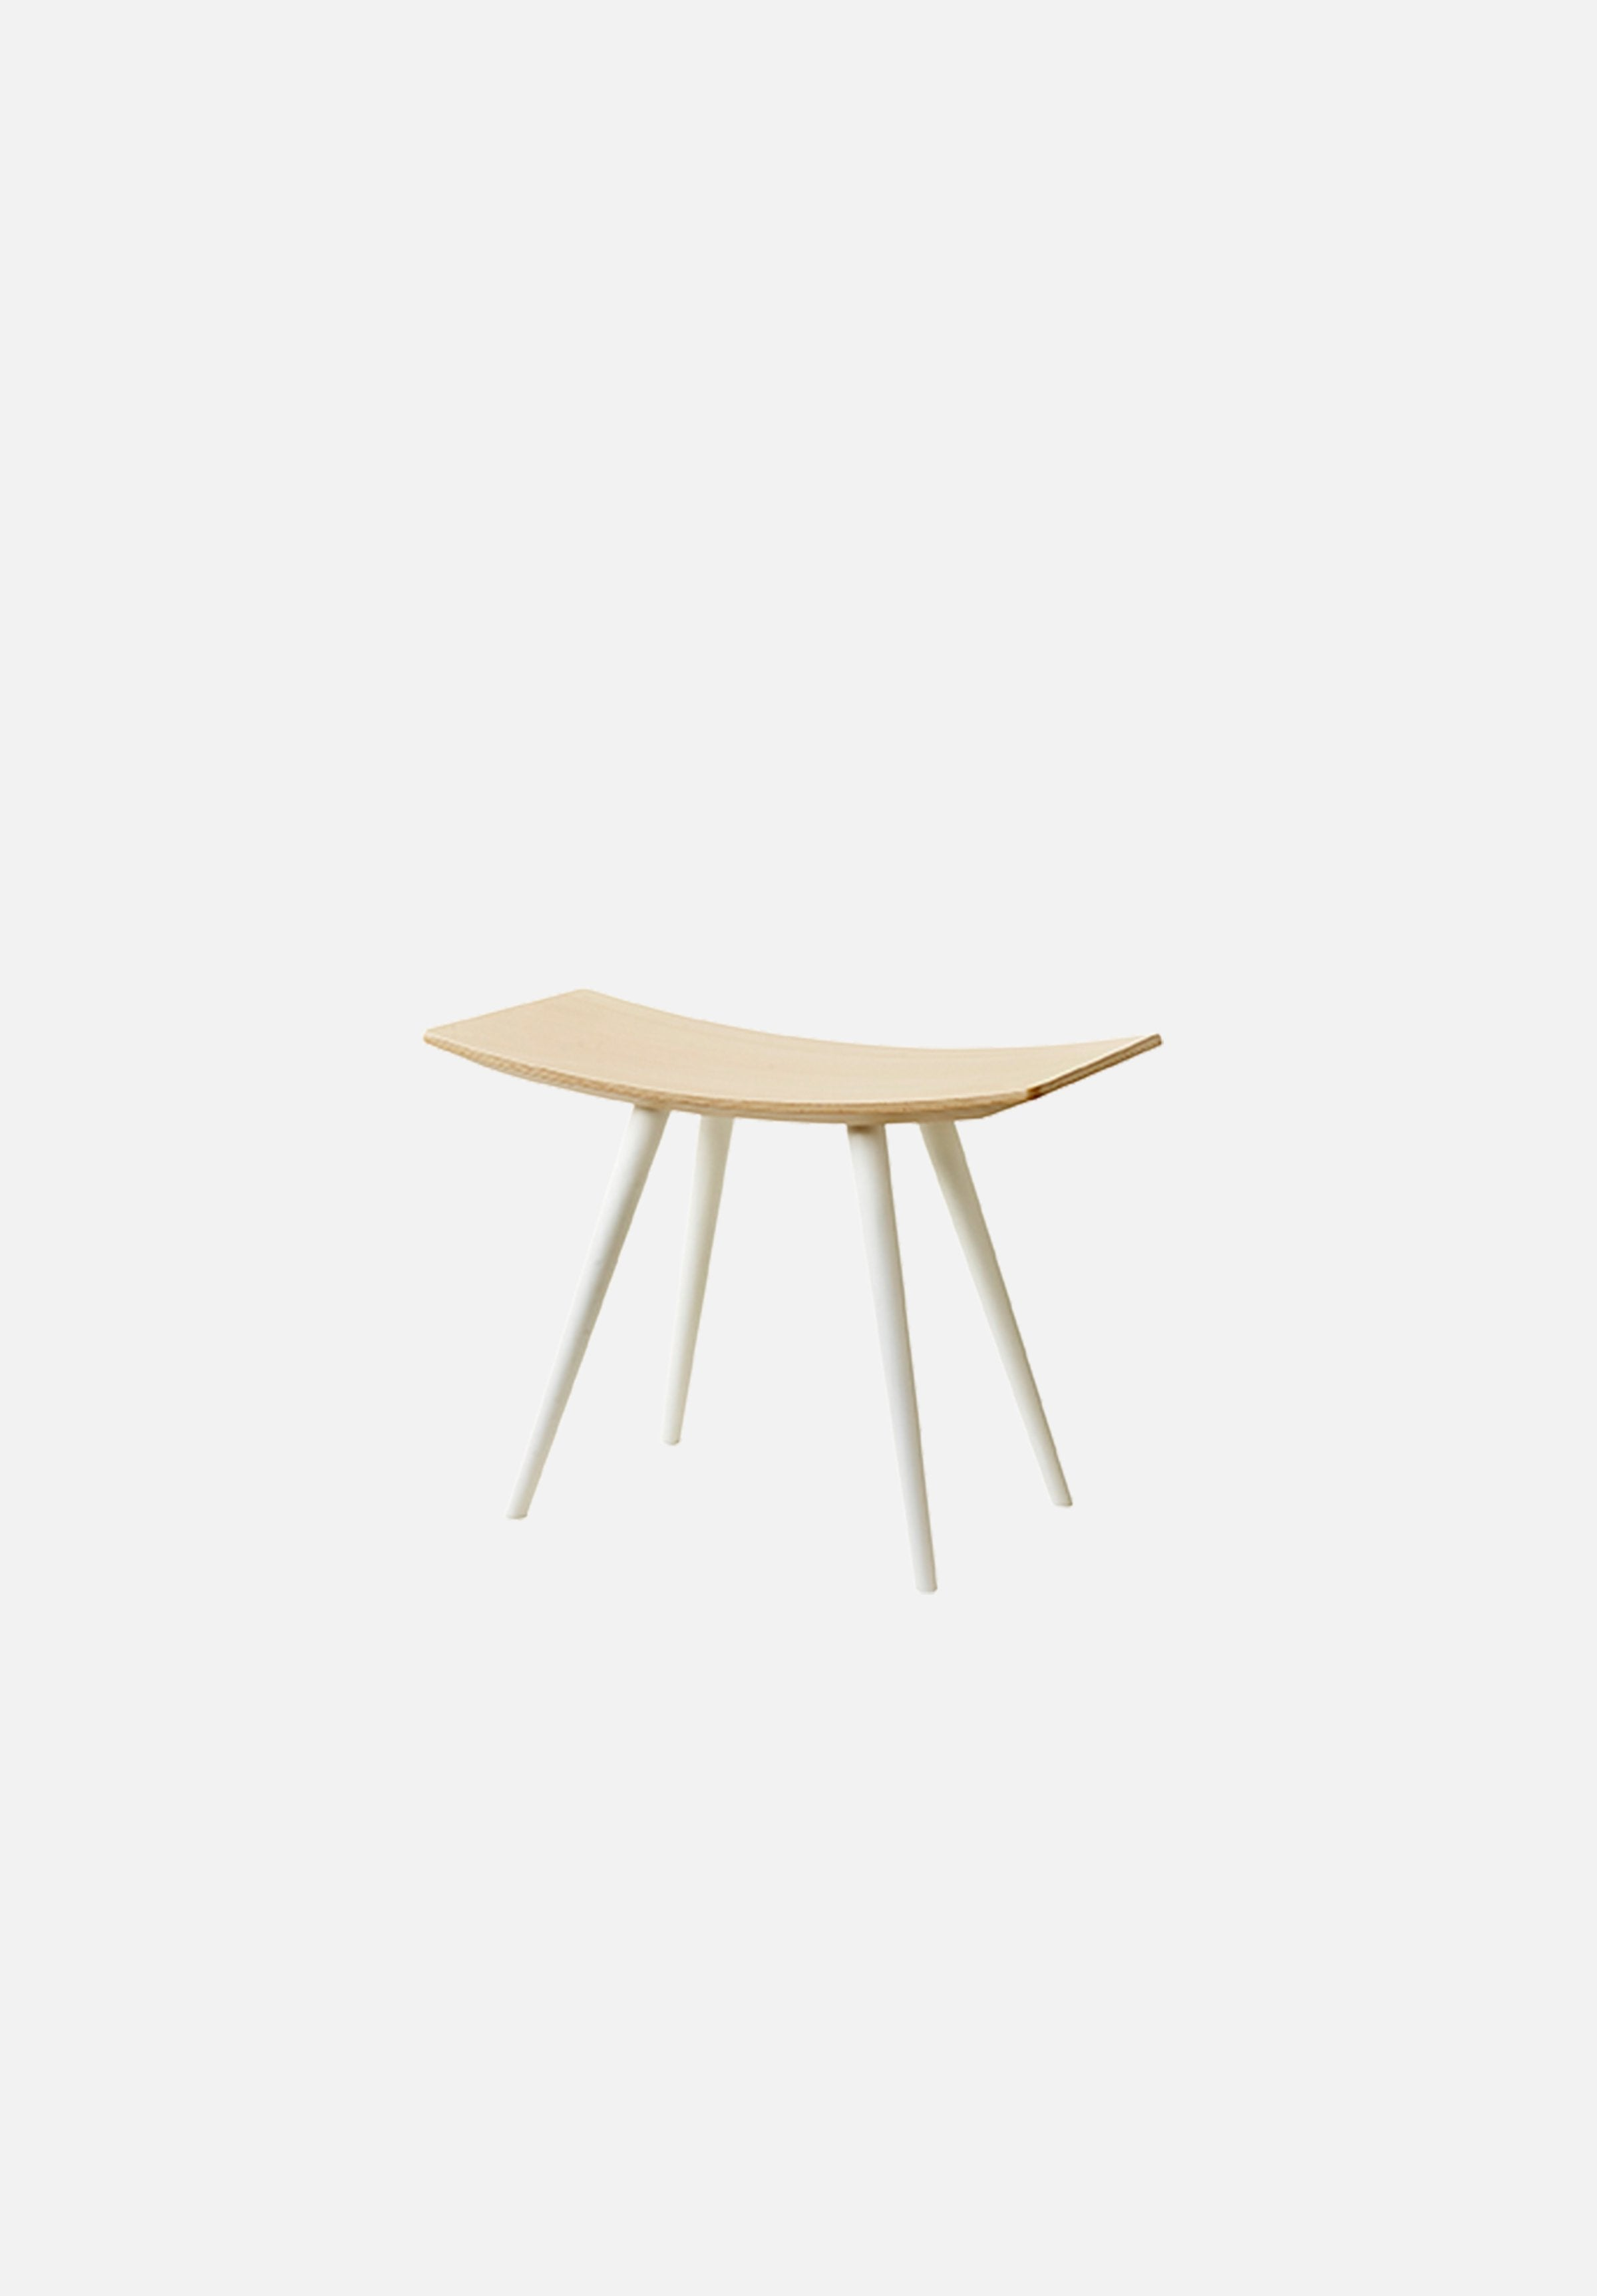 J154 Mikado Stool Mikado FDB Møbler white Danish Design Furniture Chairs Average Toronto Canada Design Store